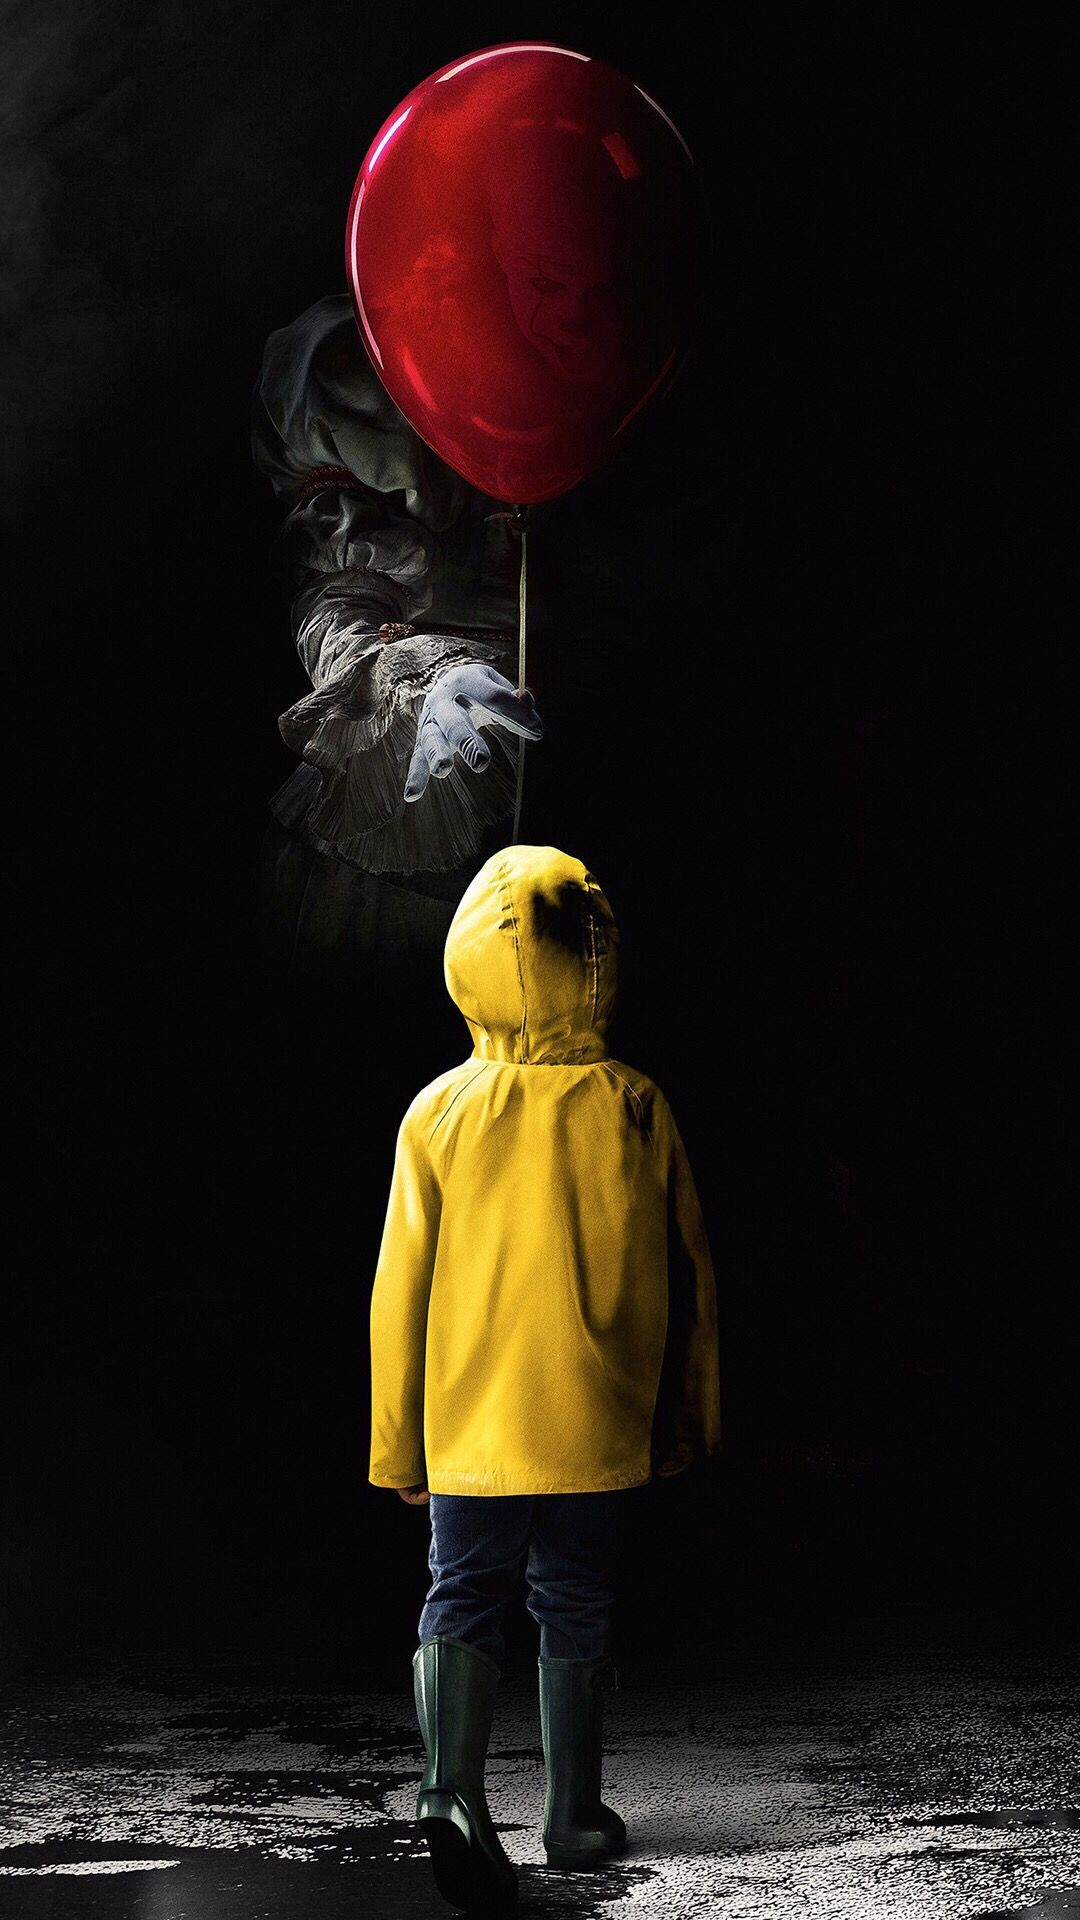 Pin by نجوى on Block b Scary wallpaper, Pennywise the